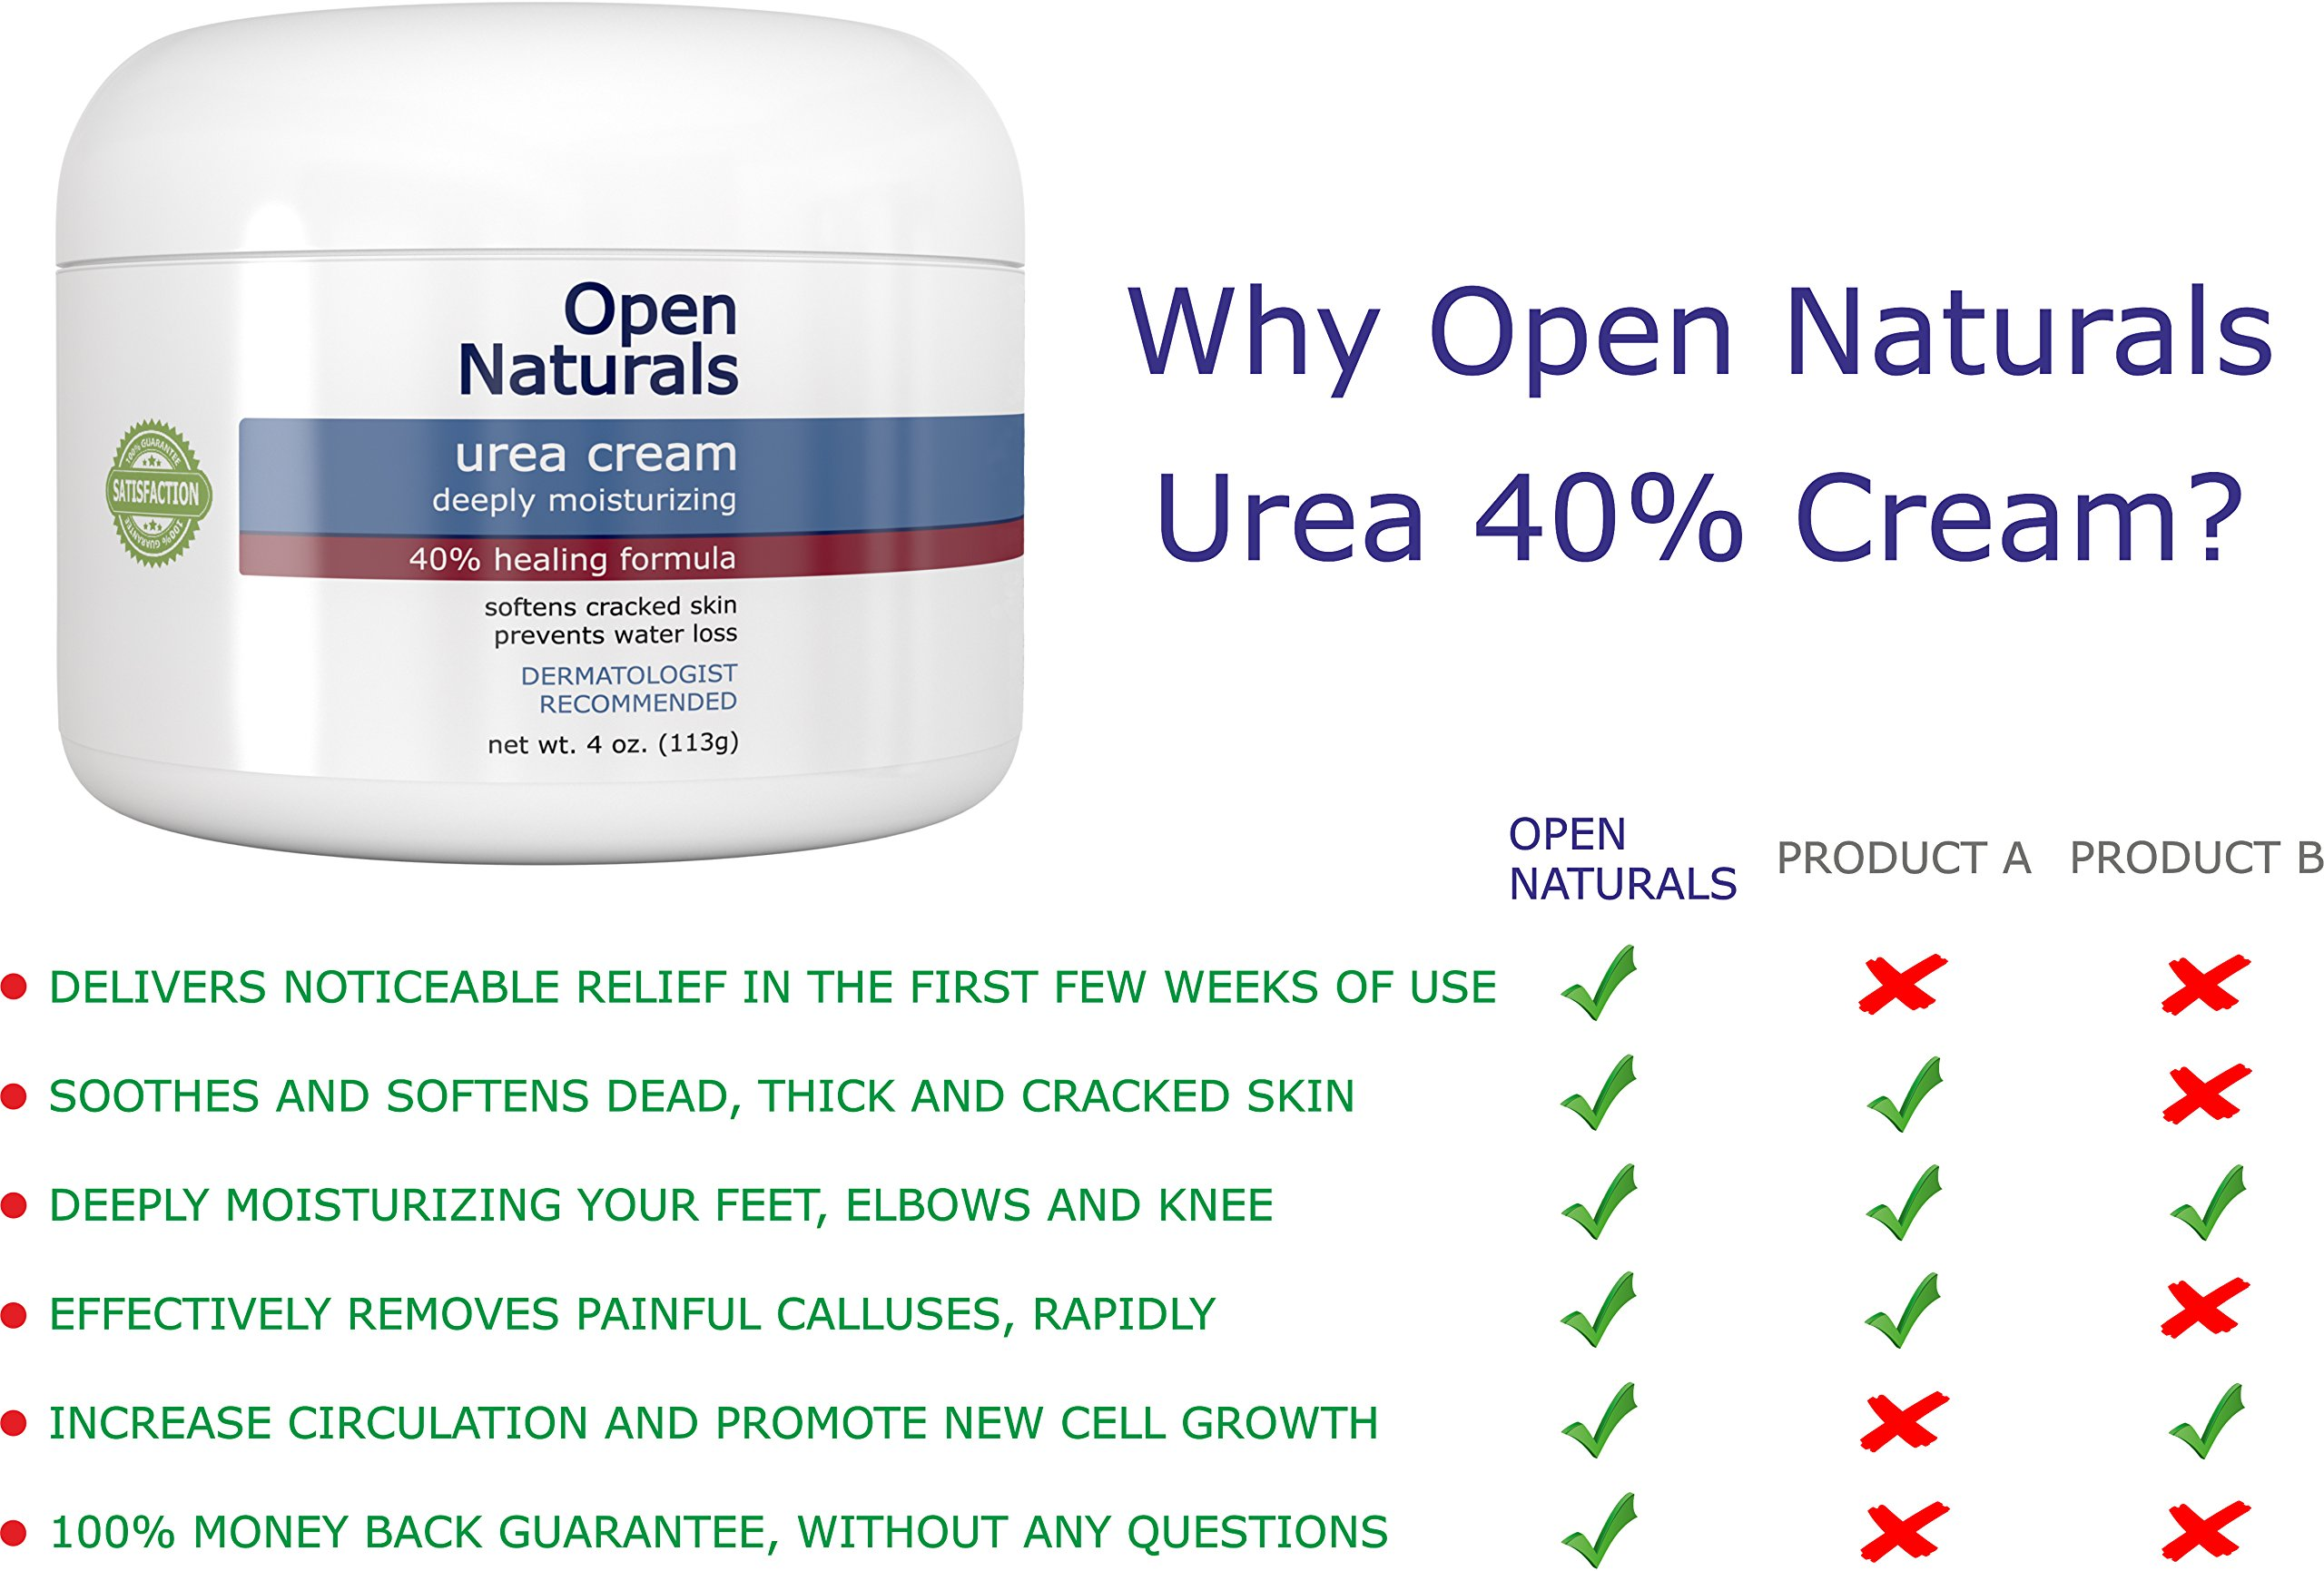 Open Naturals Urea 40% Foot Cream - 4 oz - Premium Callus Remover - Moisturizes and Rehydrates Thick, Cracked, Rough, Dead and Dry Skin - Elbow, Feet - Your Satisfaction or 100% Money Back Guarantee by Open Naturals (Image #3)